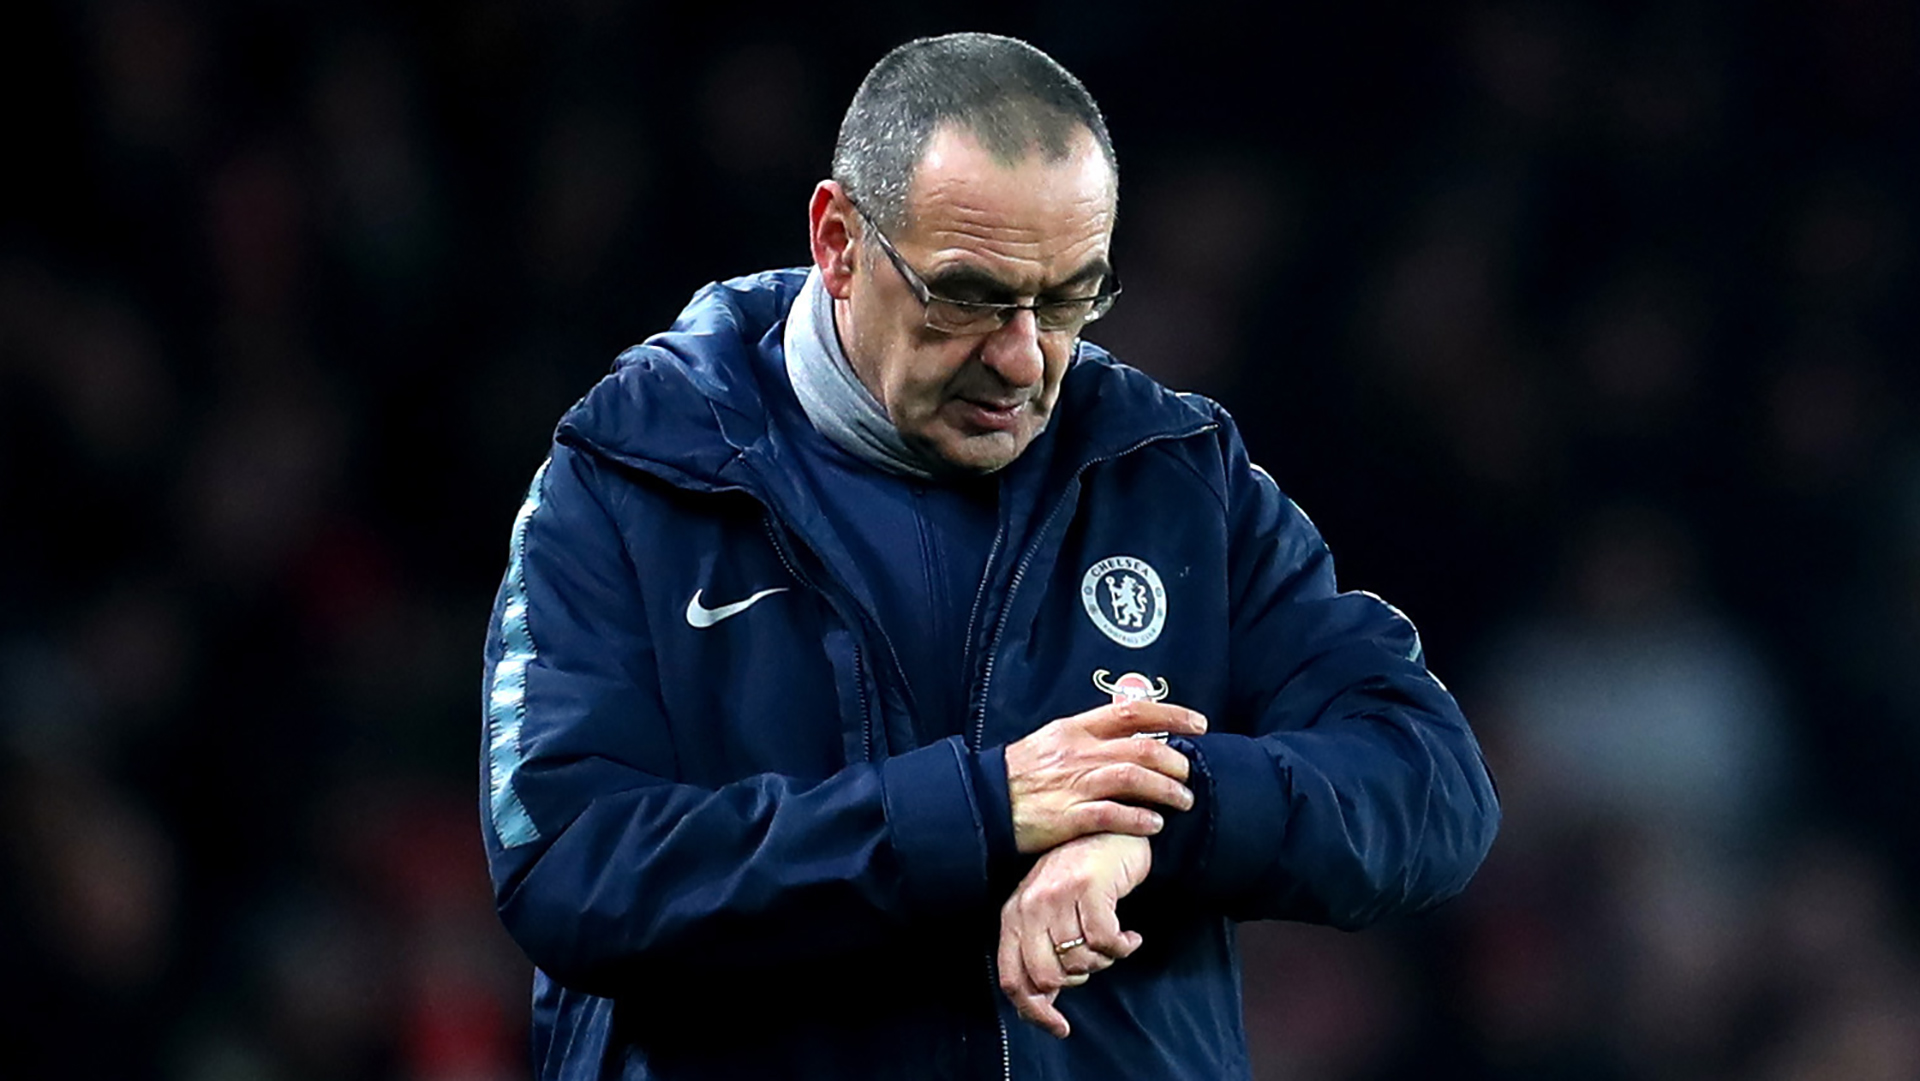 Chelsea win against Malmö gives Maurizio Sarri some breathing space